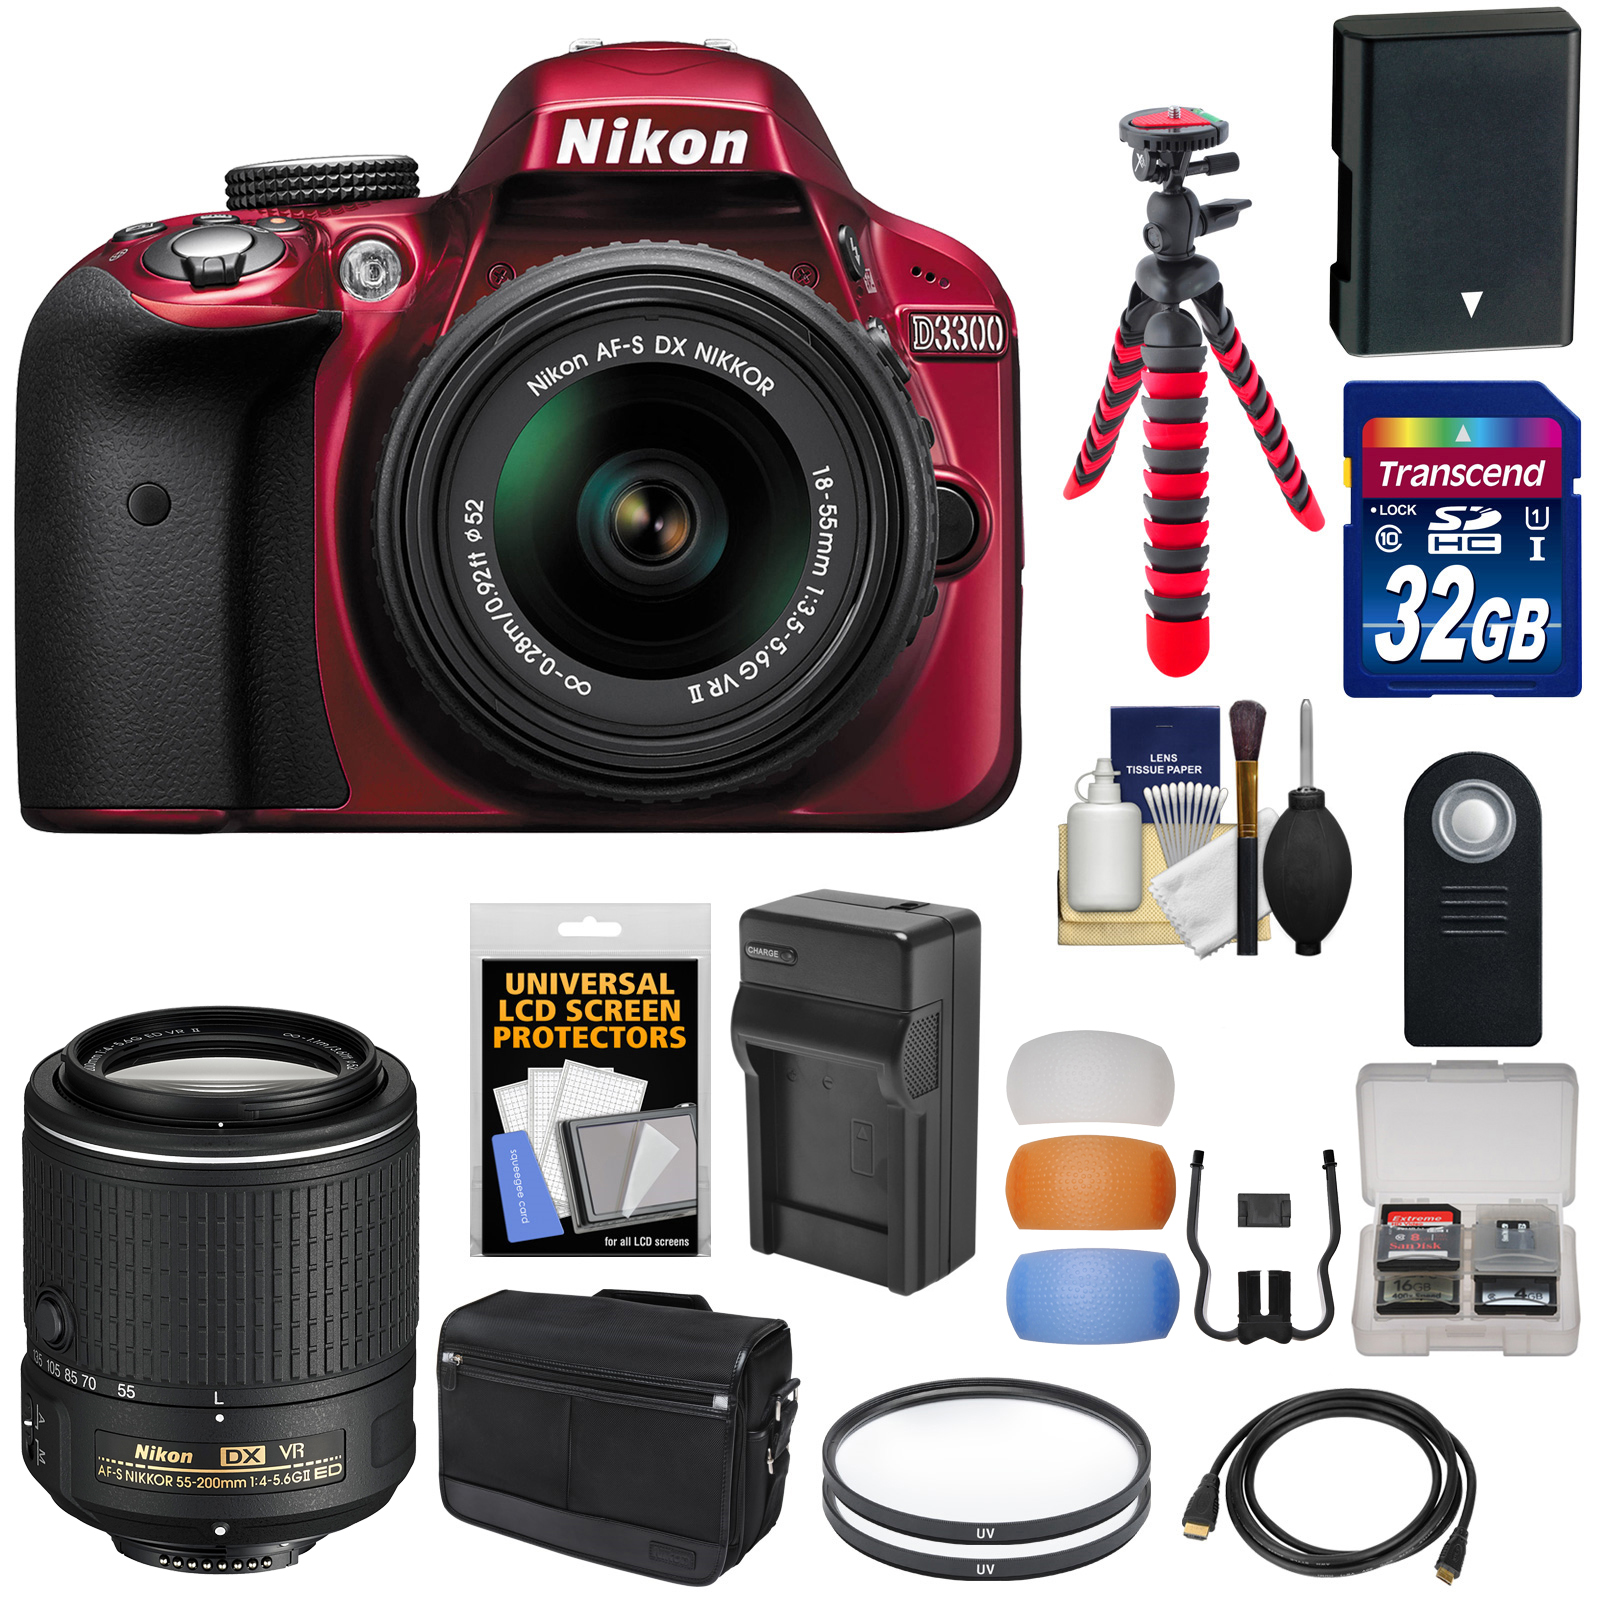 Nikon D3300 Digital SLR Camera & 18-55mm G VR DX II AF-S (Red) with 55-200mm VR II Lens   32GB Card   Shoulder Bag   Battery   Charger   Tripod Kit